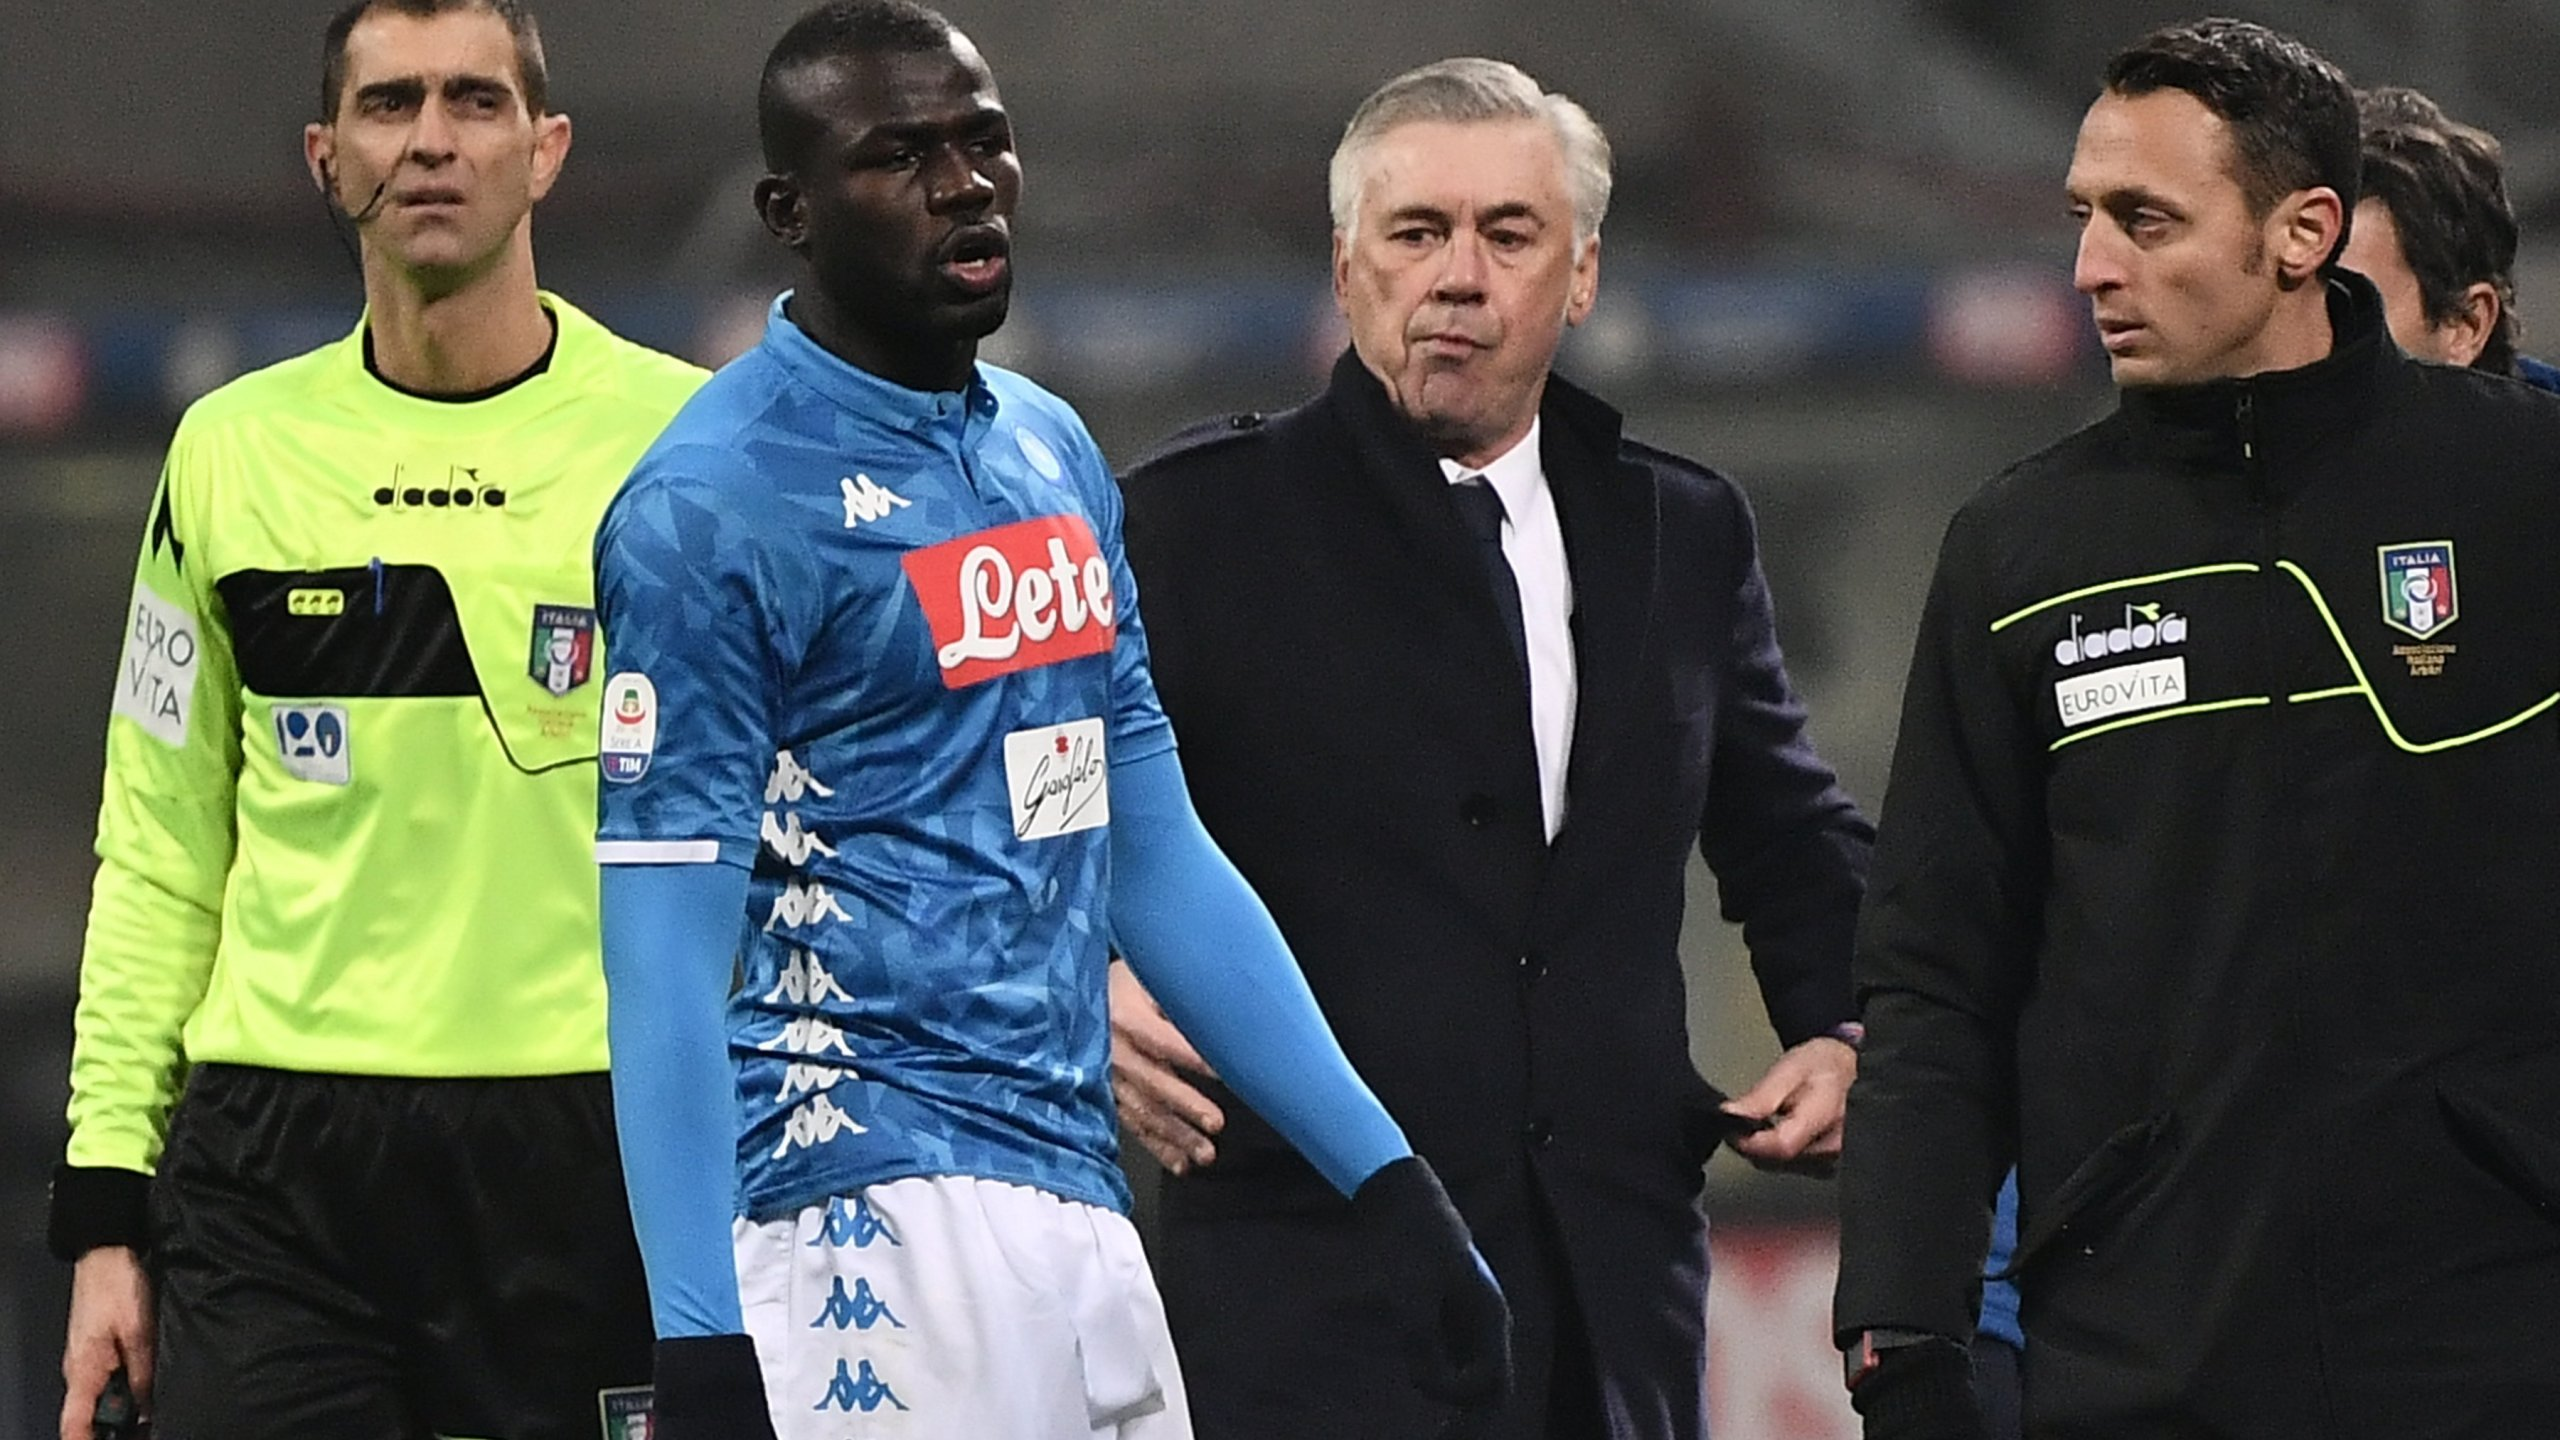 Kalidou Koulibaly leaves the pitch after receiving a red card in the game against Inter. Napoli coach Carlo Ancelotti says the next time a member of his team is racially abused the way Koulibaly was, he'd be happy for the Serie A side to stop playing. (Credit: Marco Bertorello AFP/Getty Images via CNN)